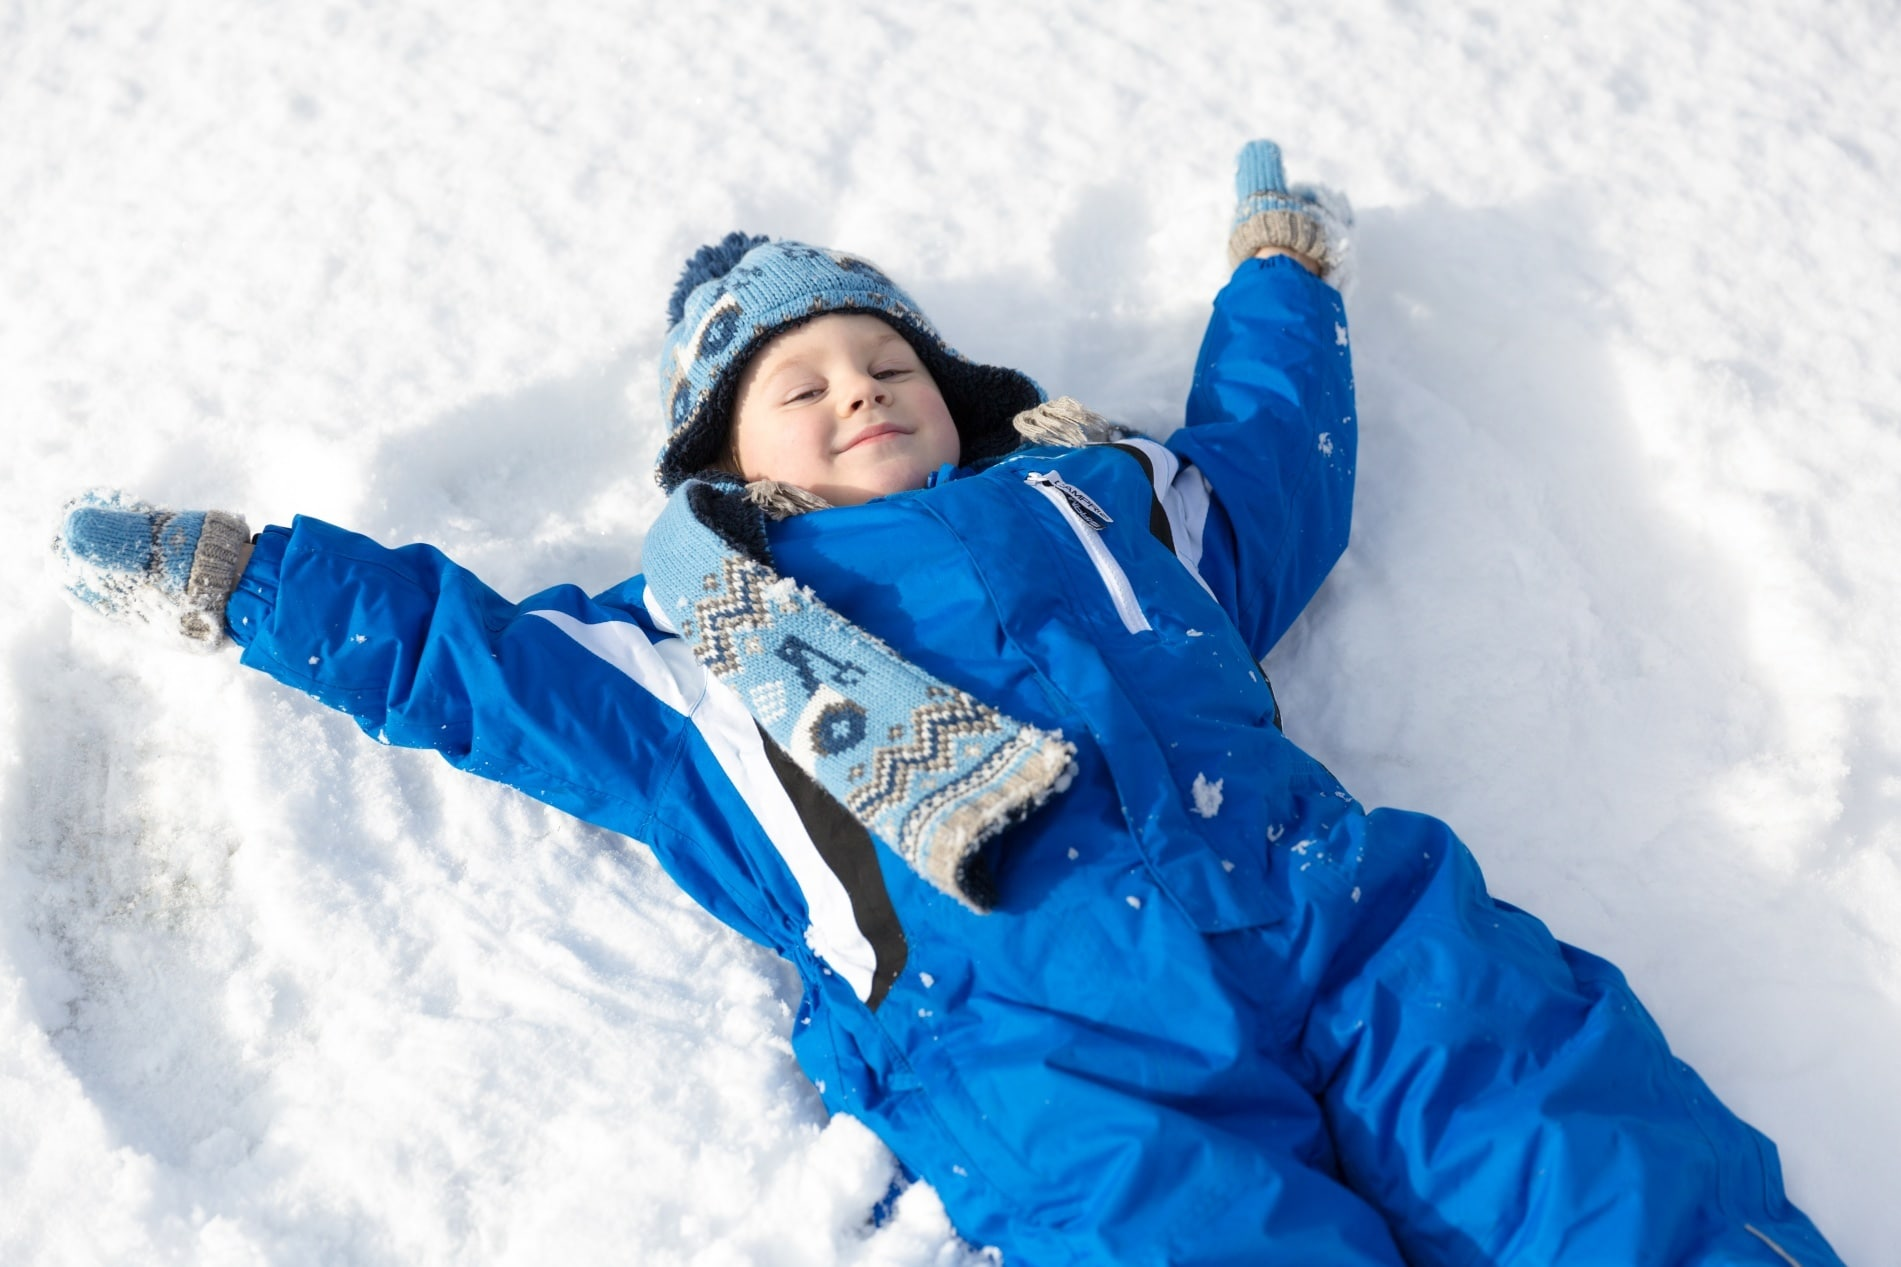 A snow angel competition will complete your winter triathlon